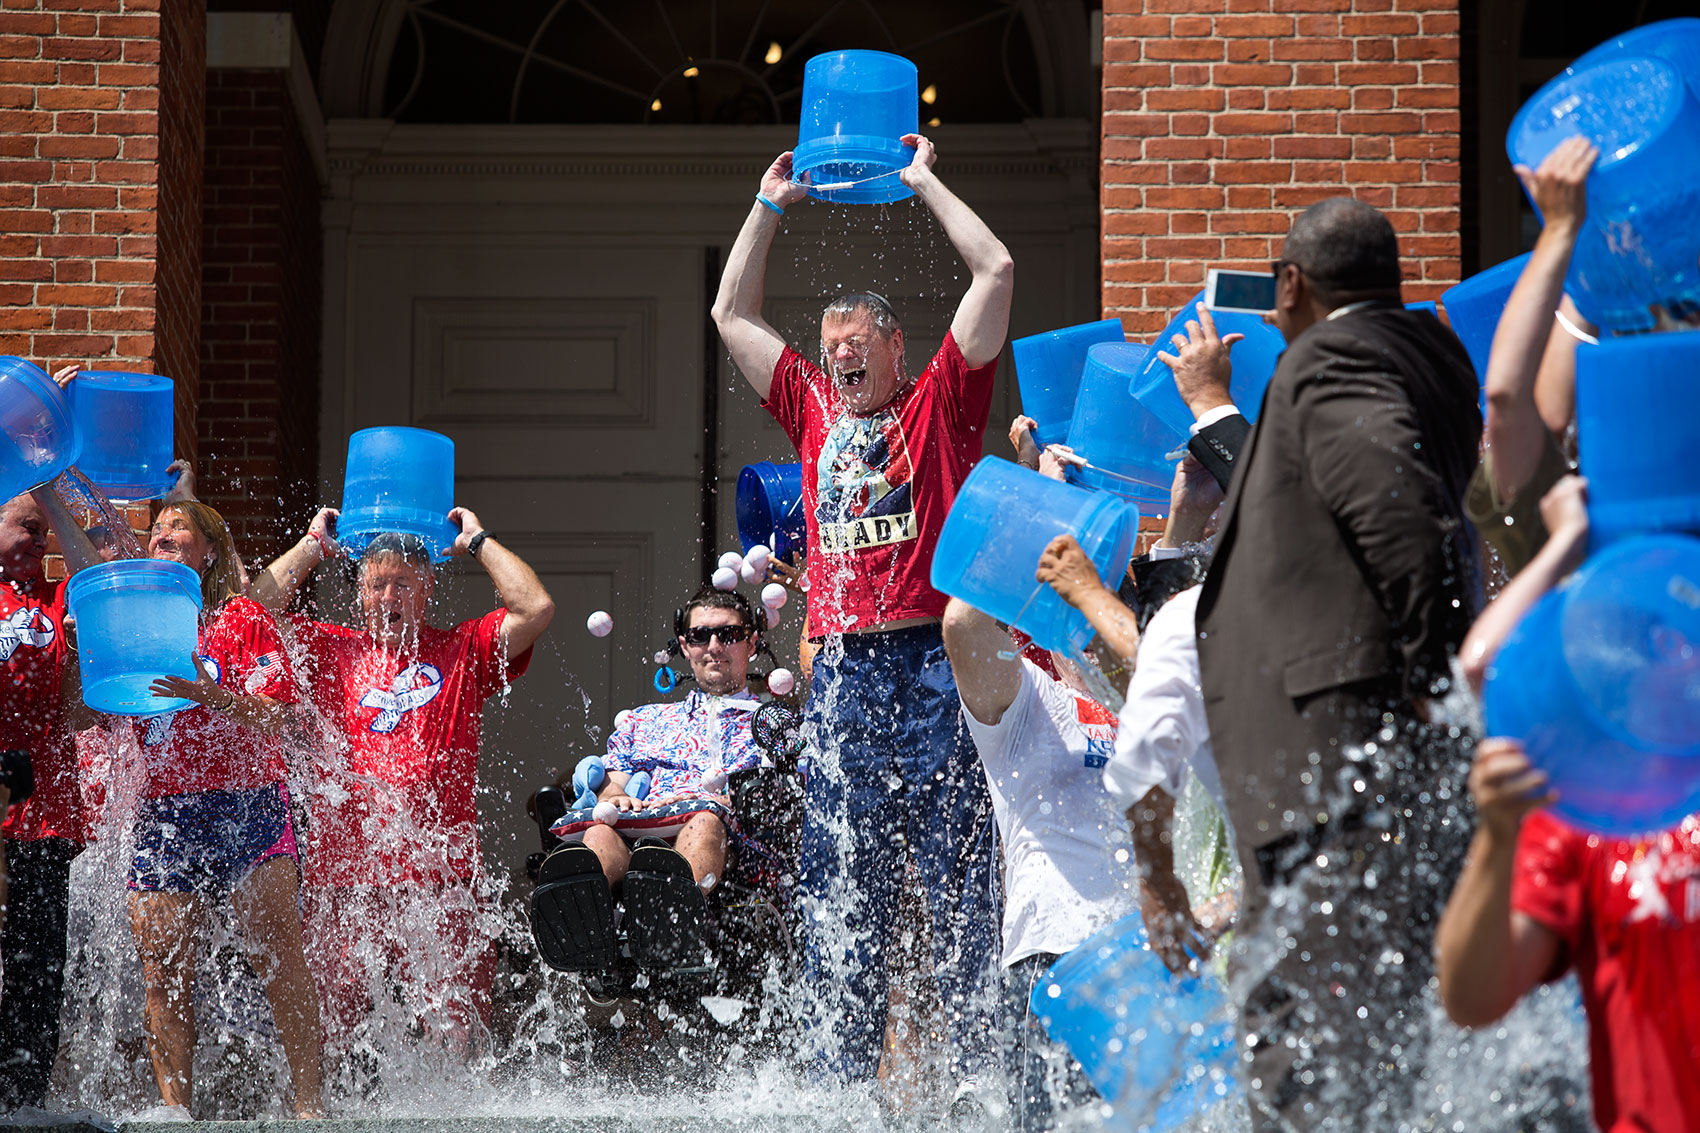 U.S. athlete who inspired 'ice bucket challenge' dies at 34